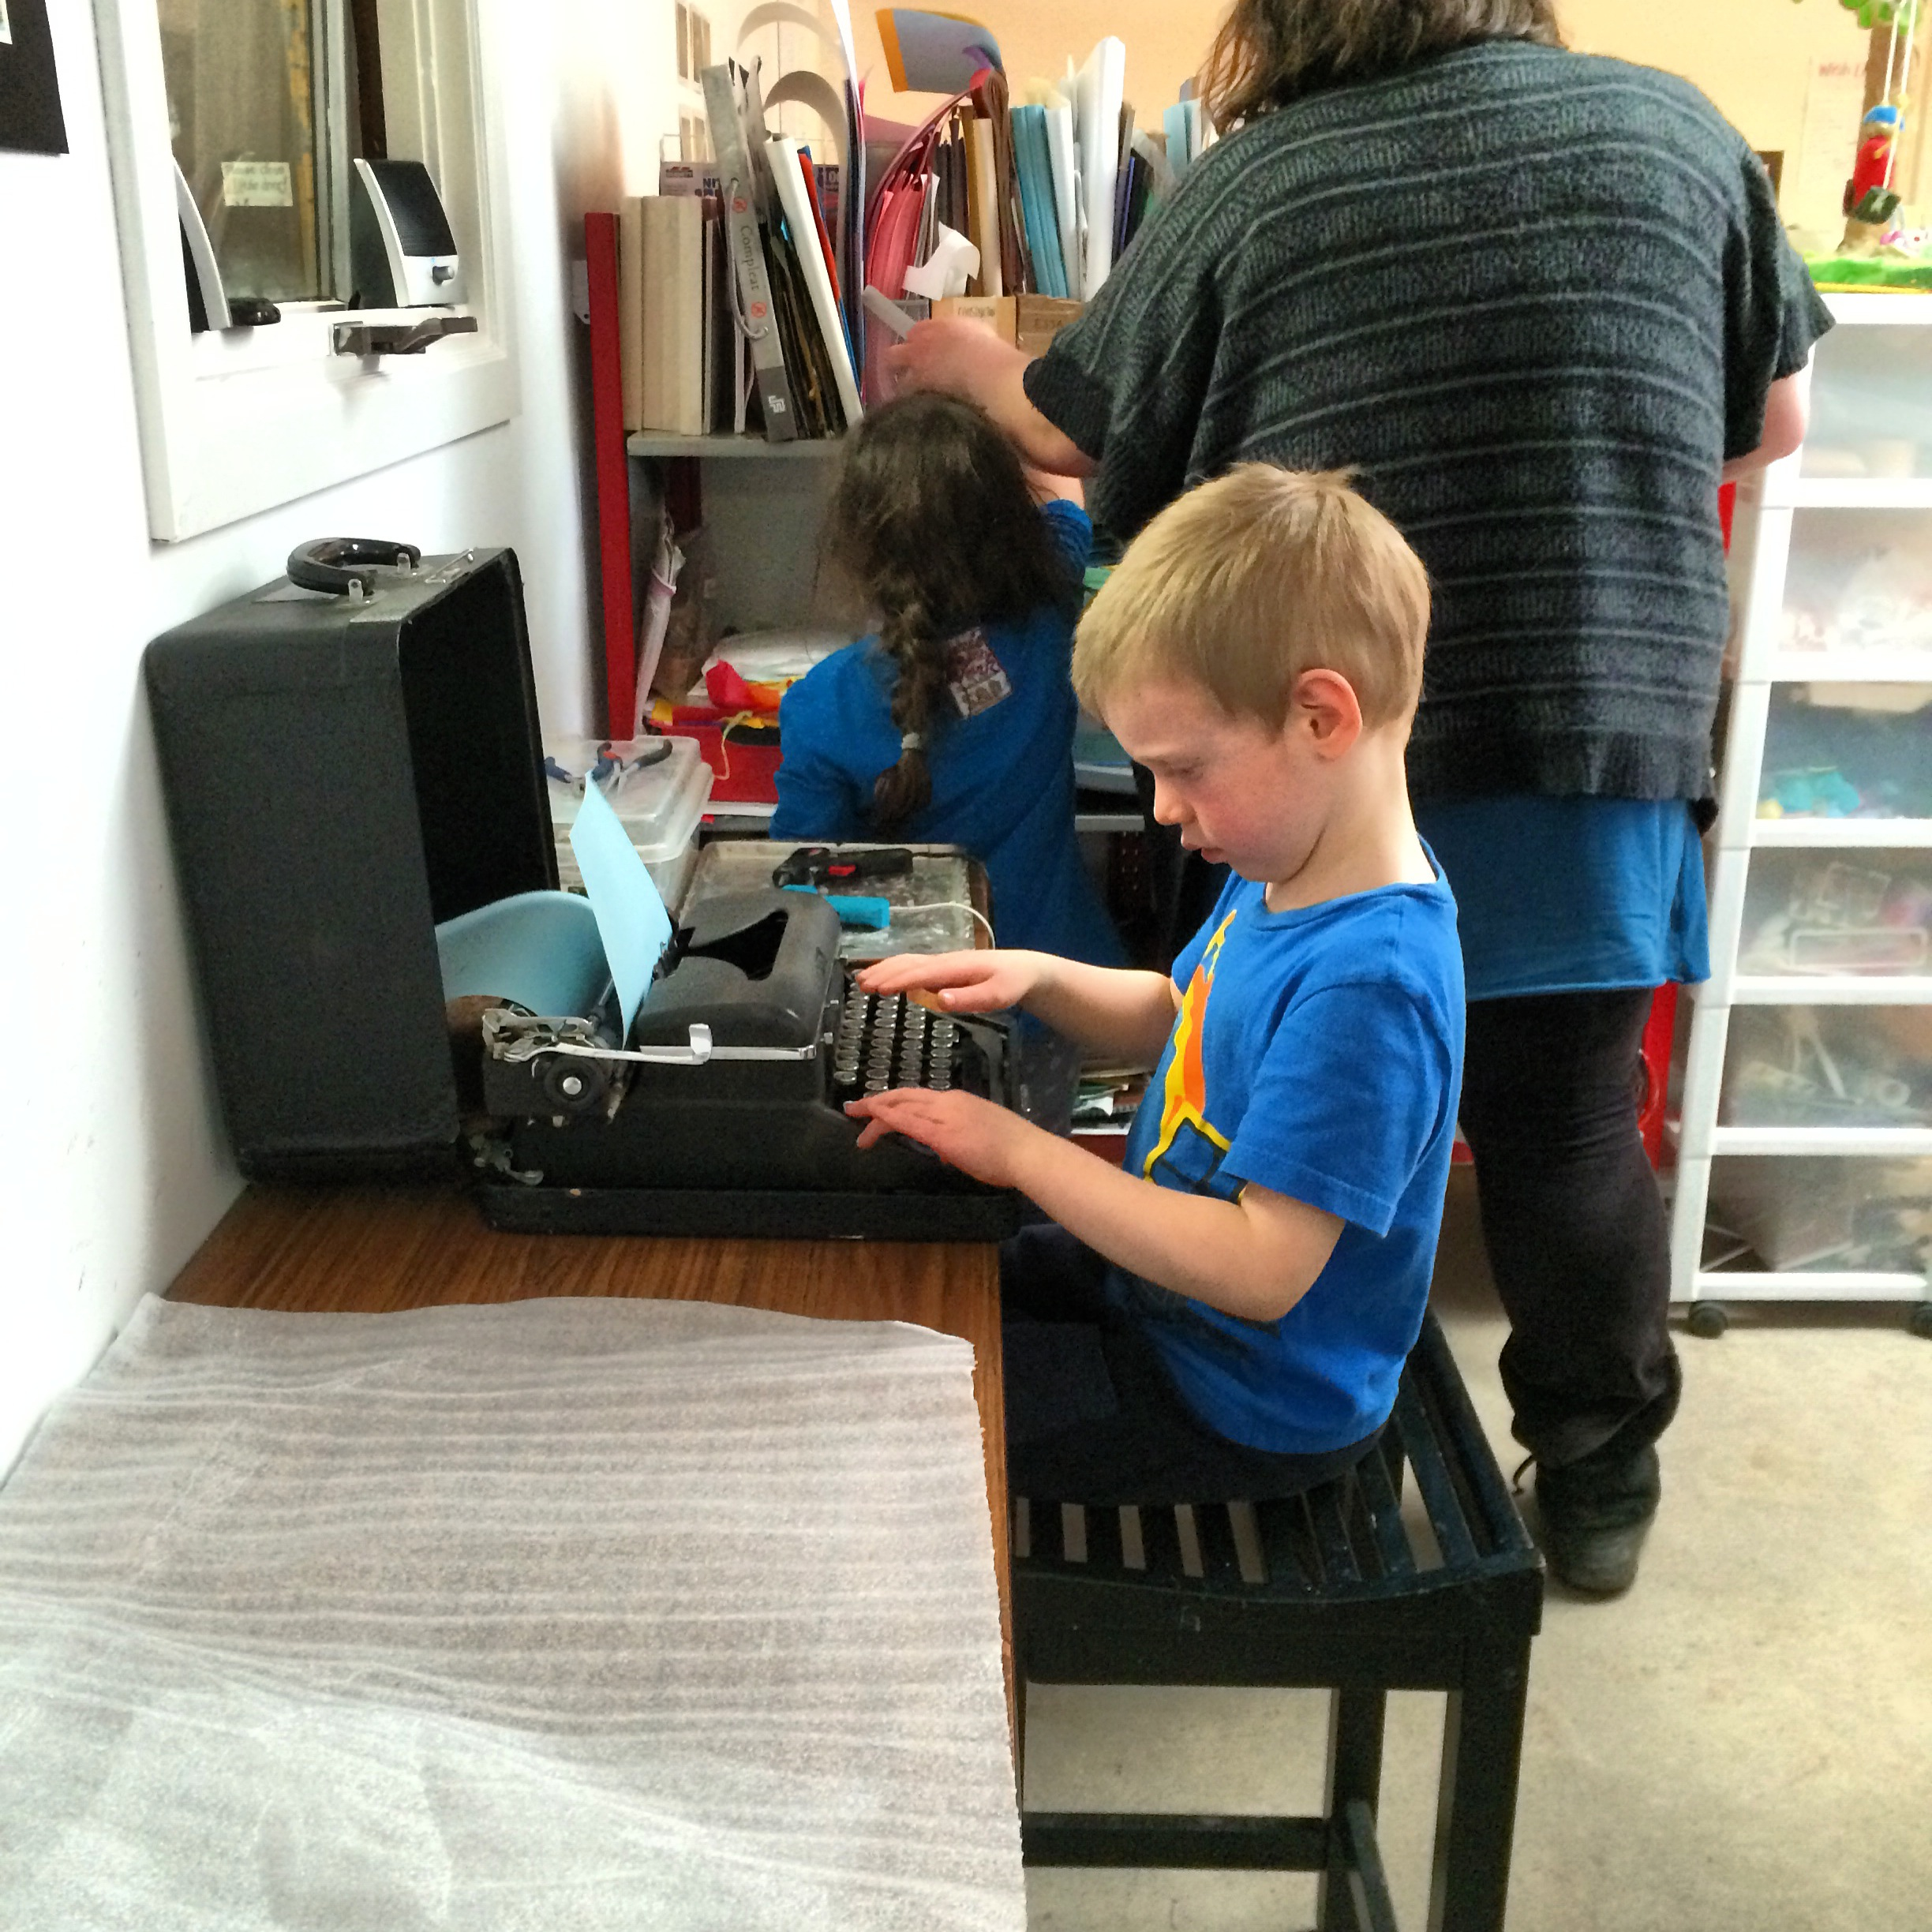 Violet the manual typewriter that belonged to our board member, Cecilia's grandmother!